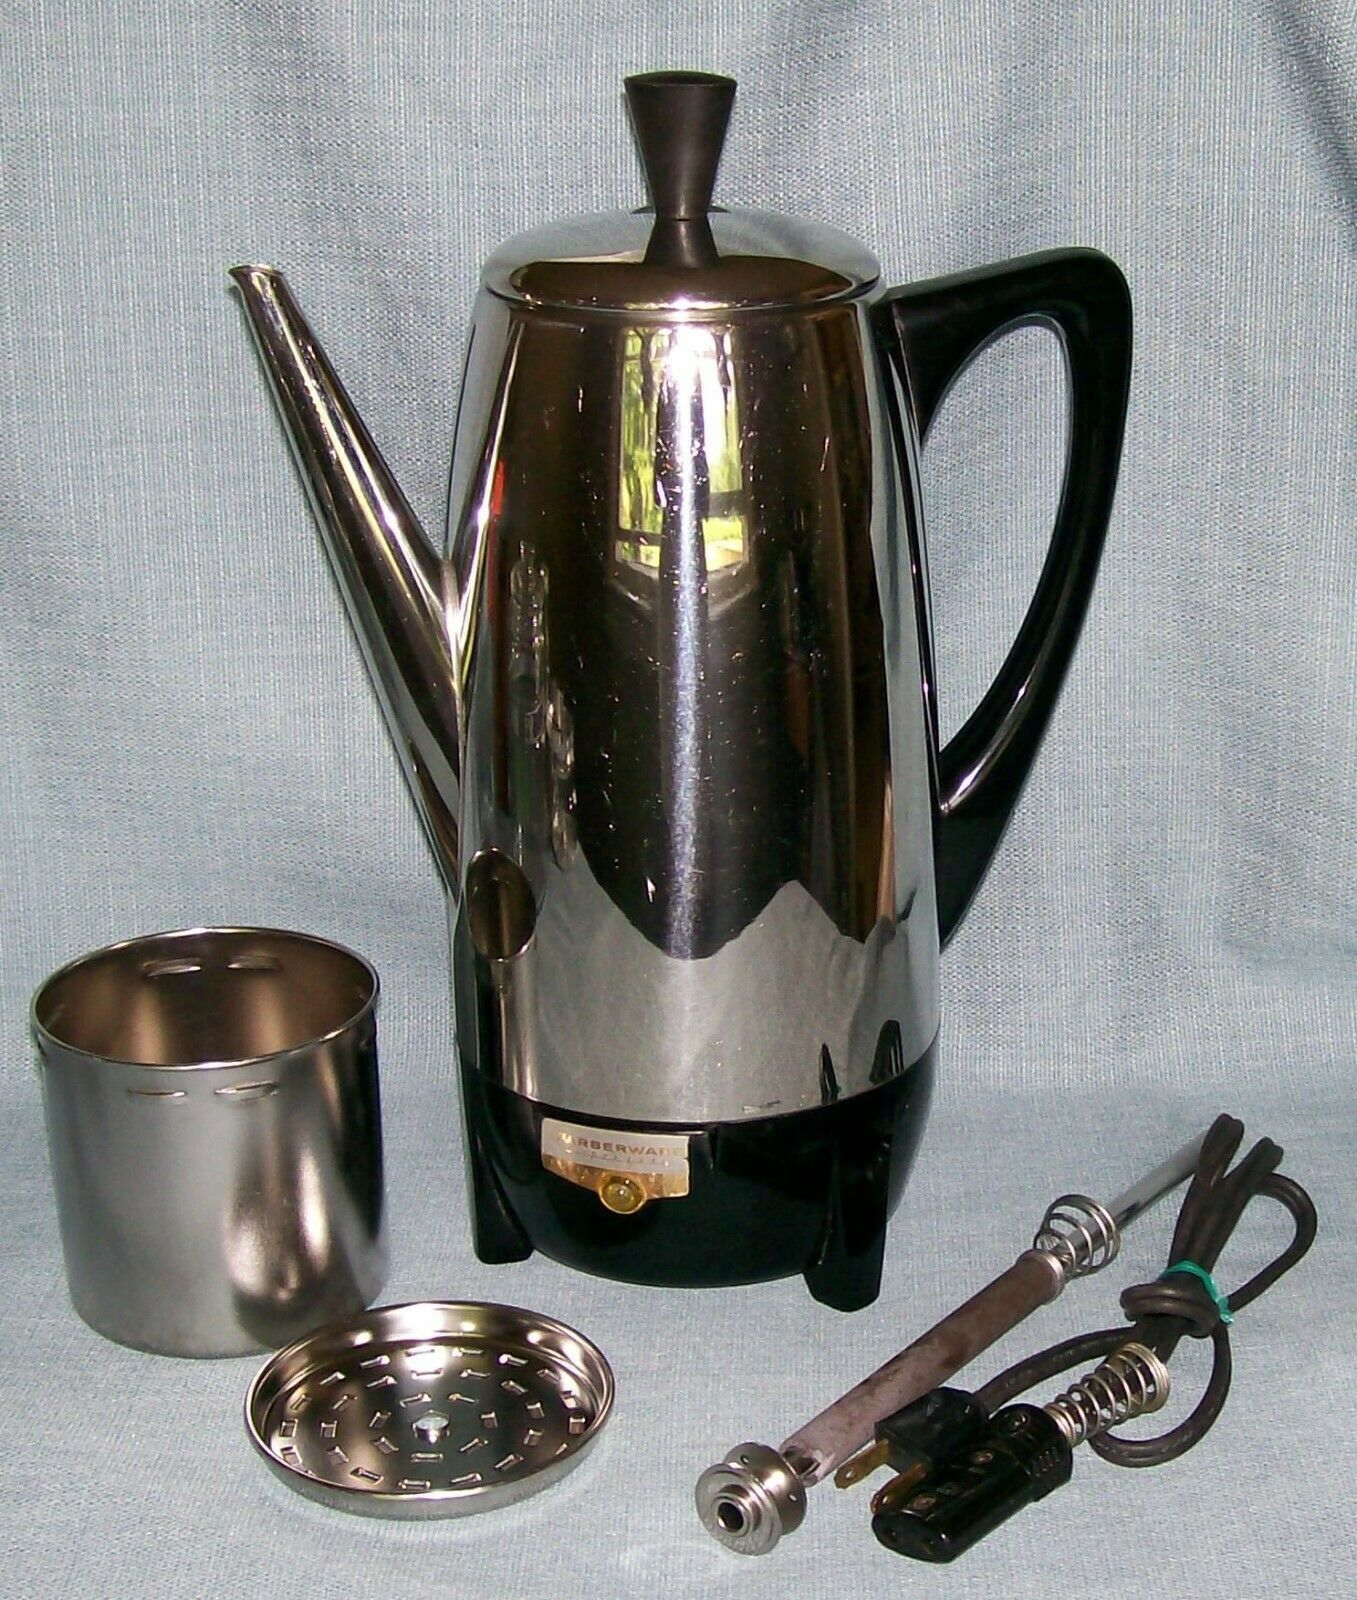 Vintage Farberware Superfast 12 Cup Percolator Coffee Pot 122 Automatic New York image 1